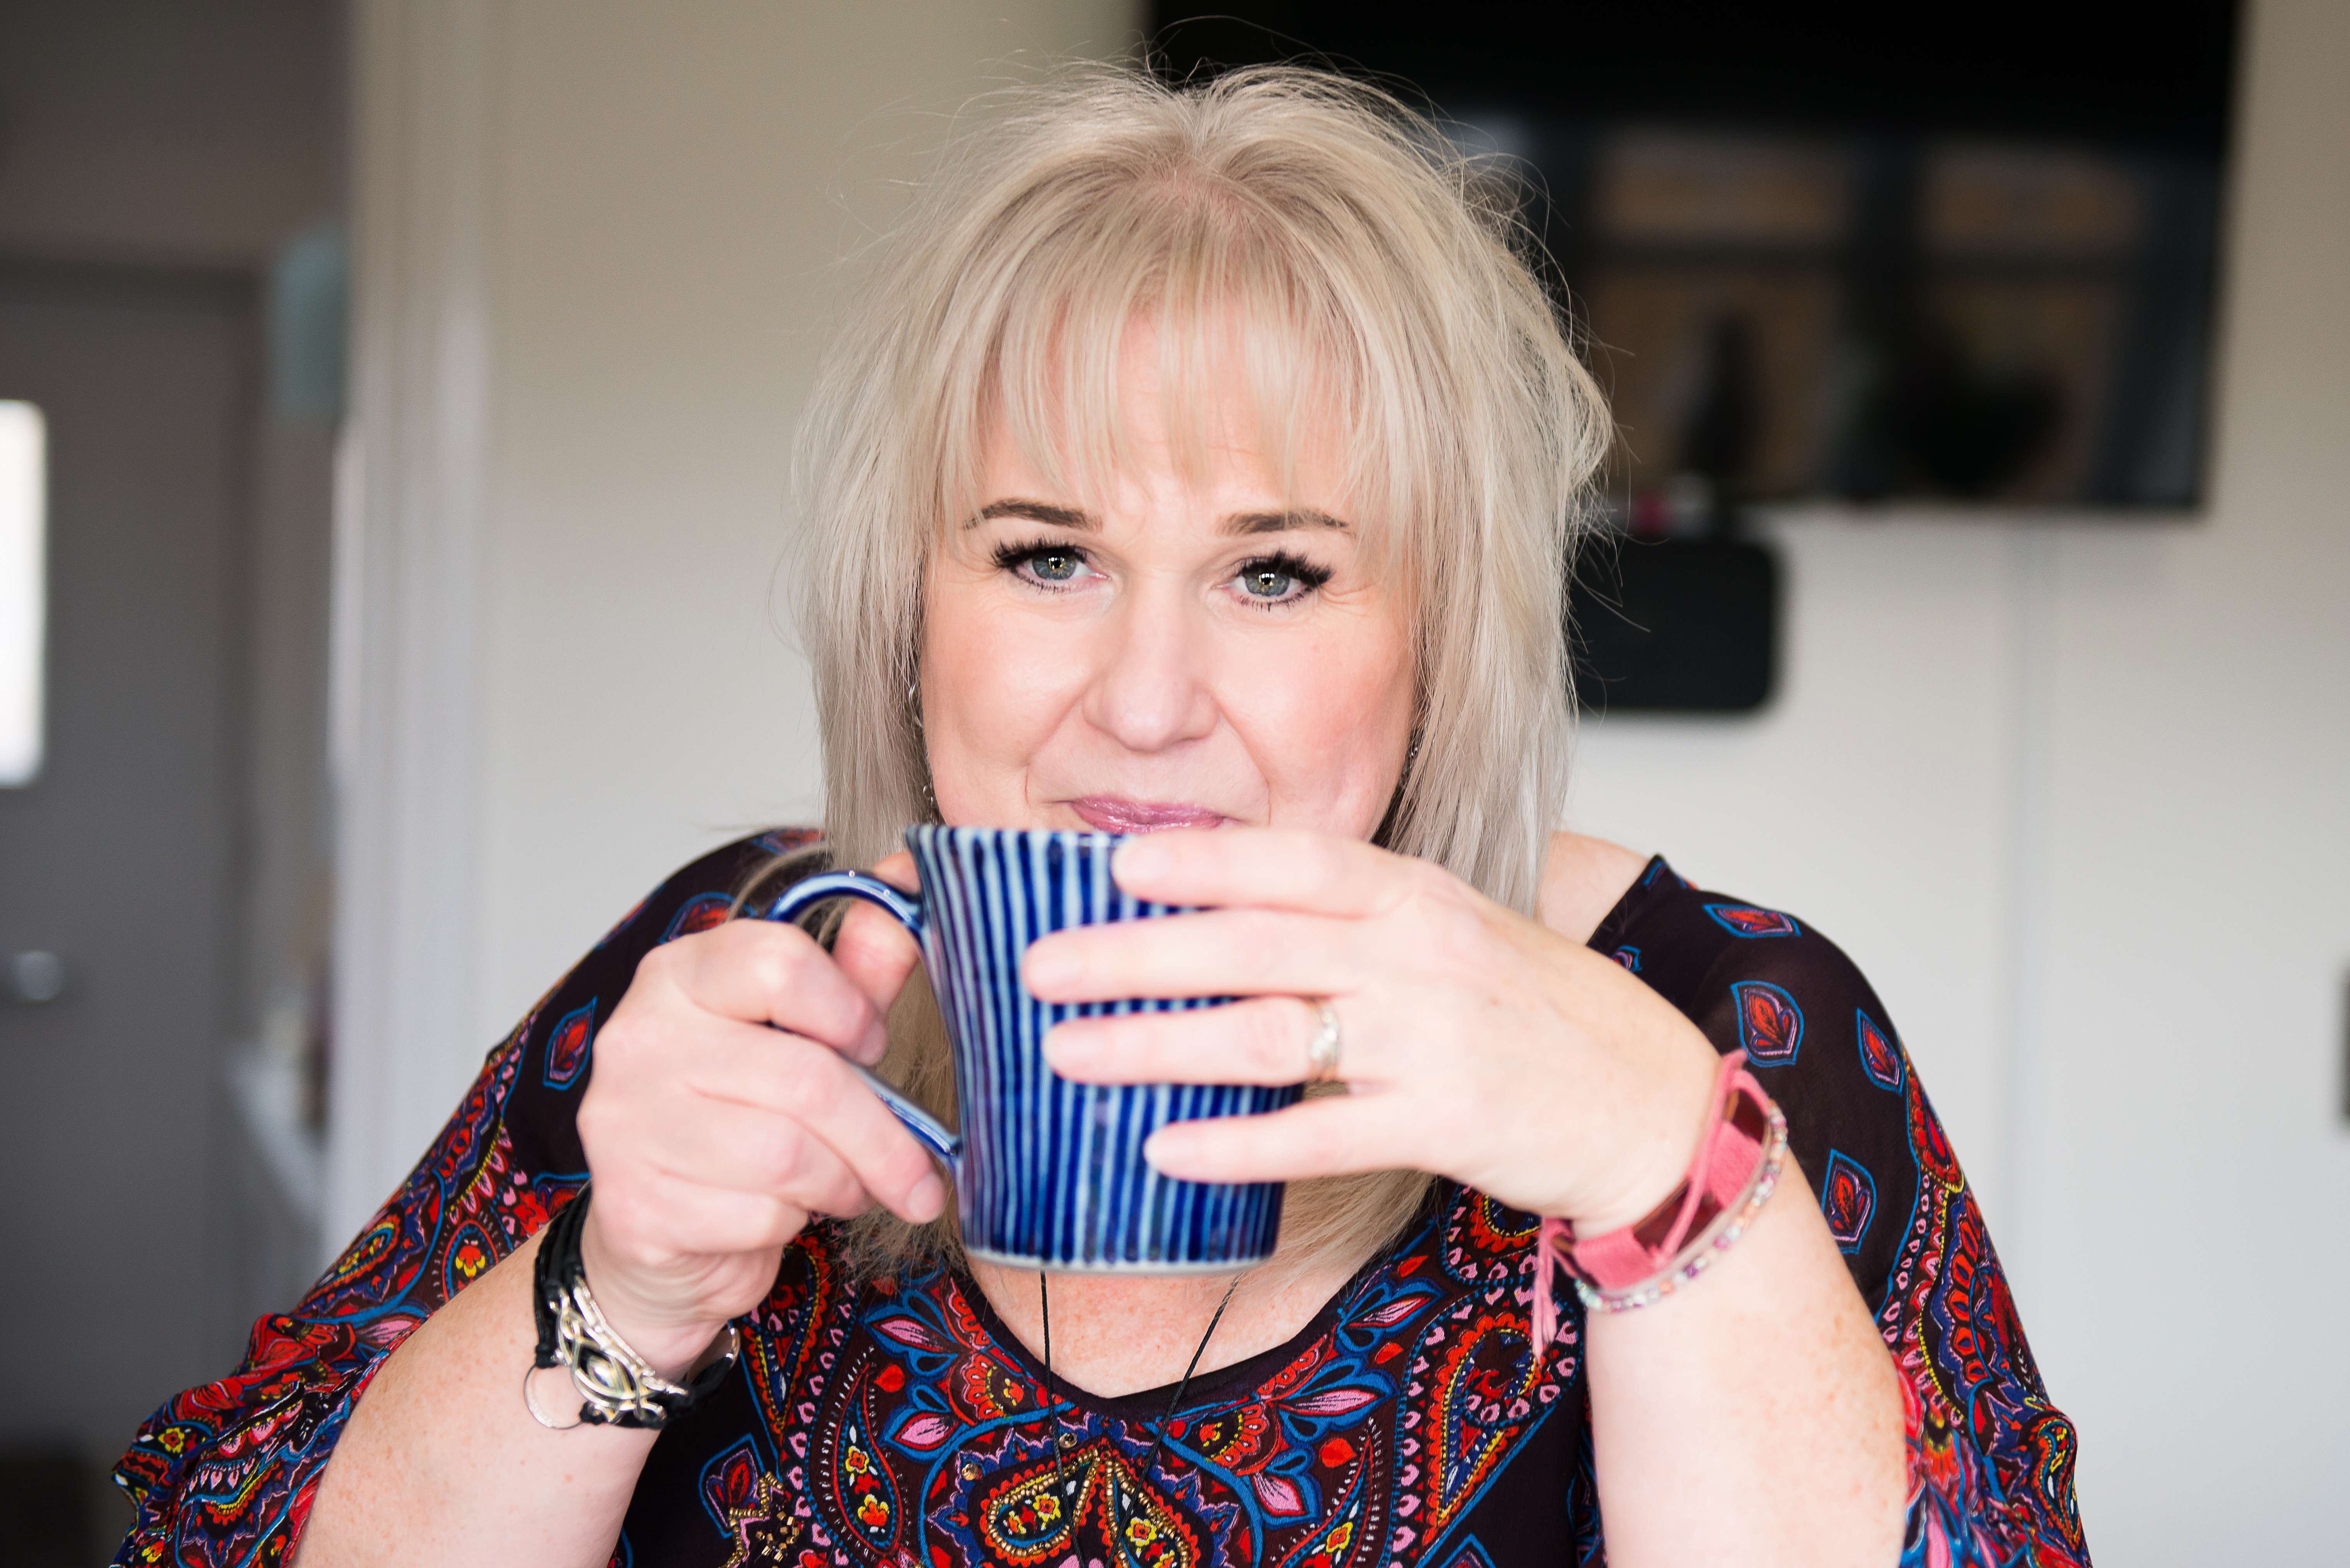 picture of a woman drinking a cup of tea